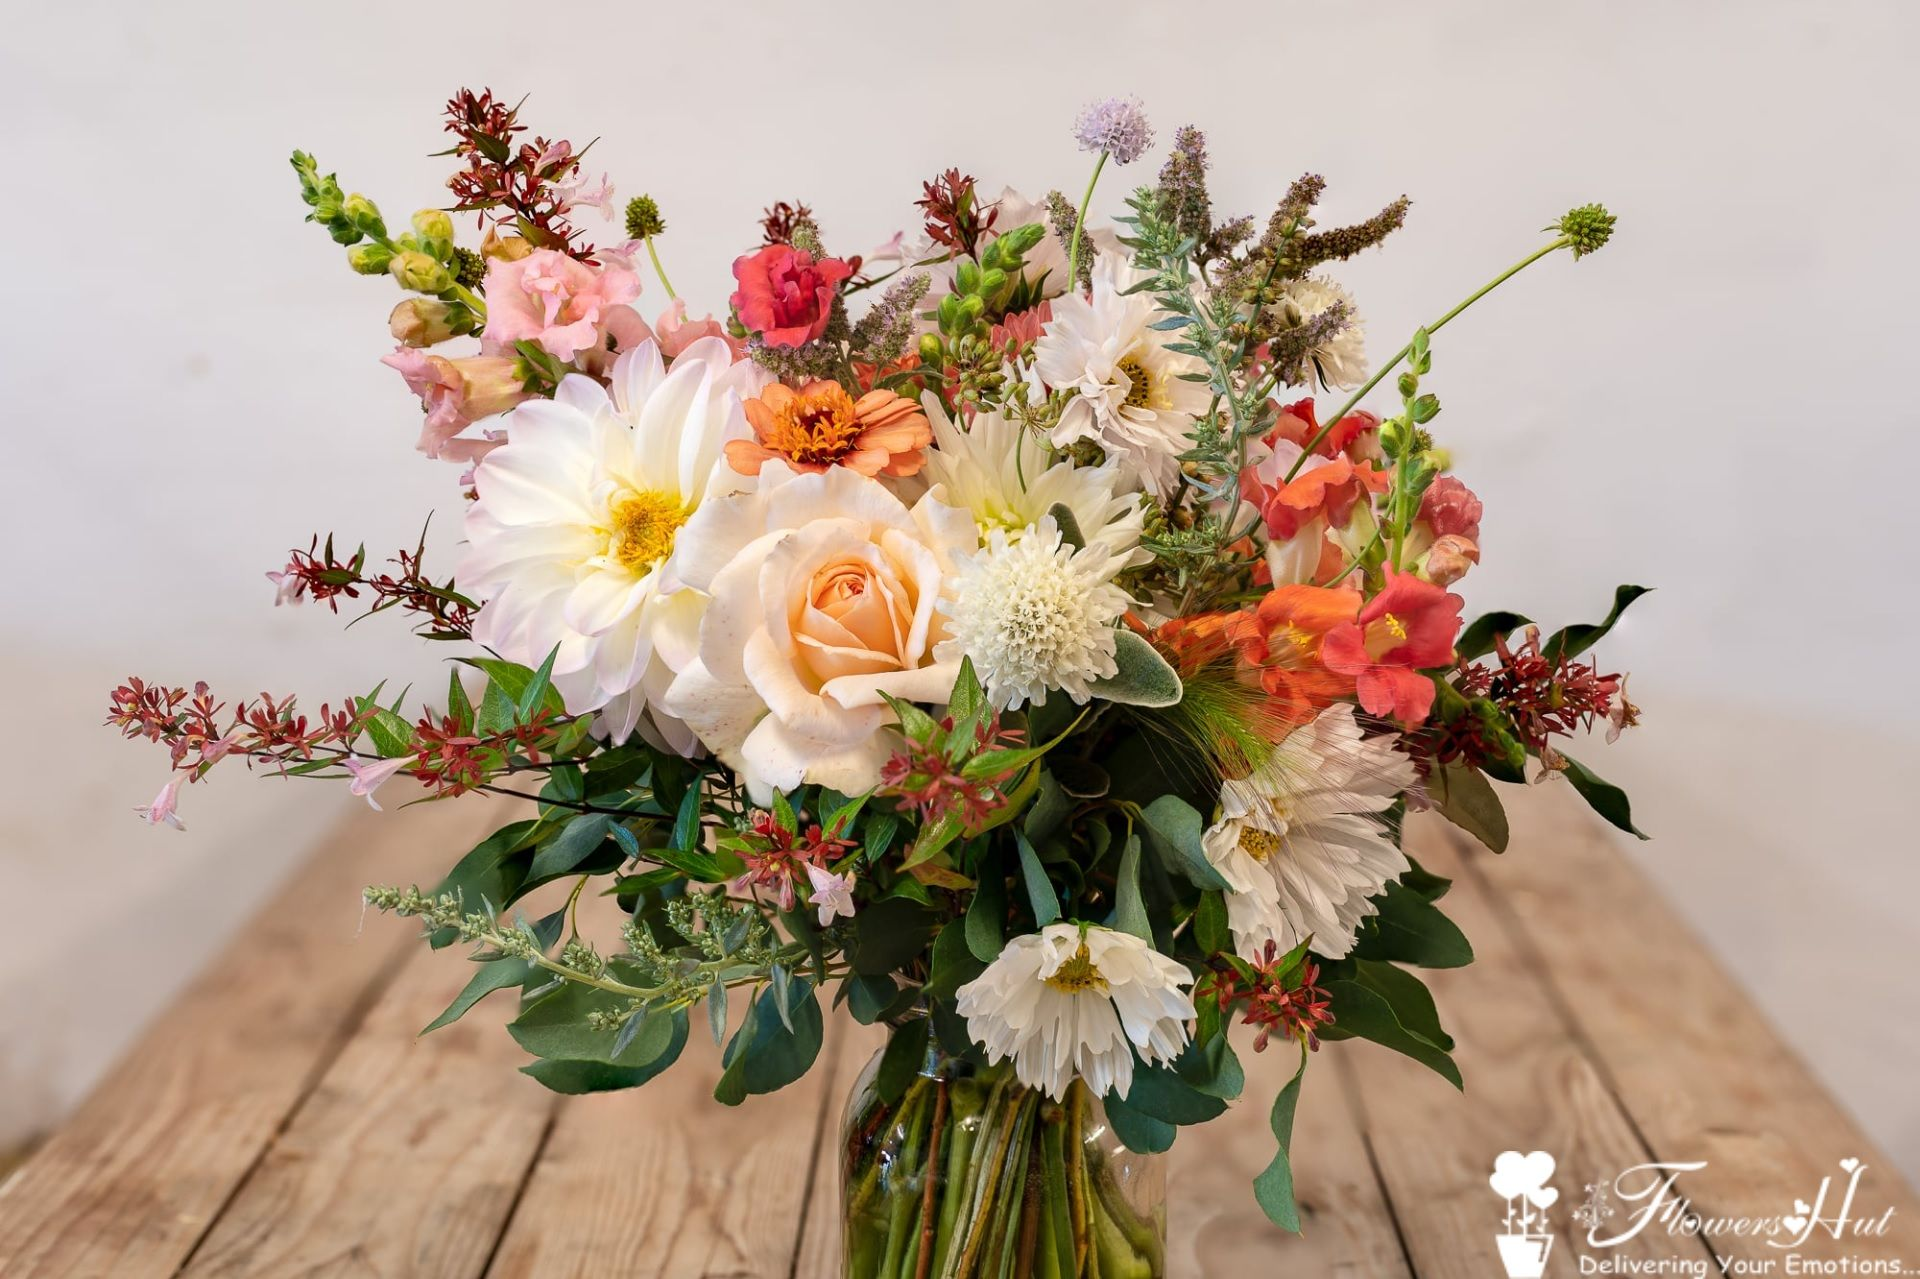 Flowers are the best way to celebrate any occasion. Send